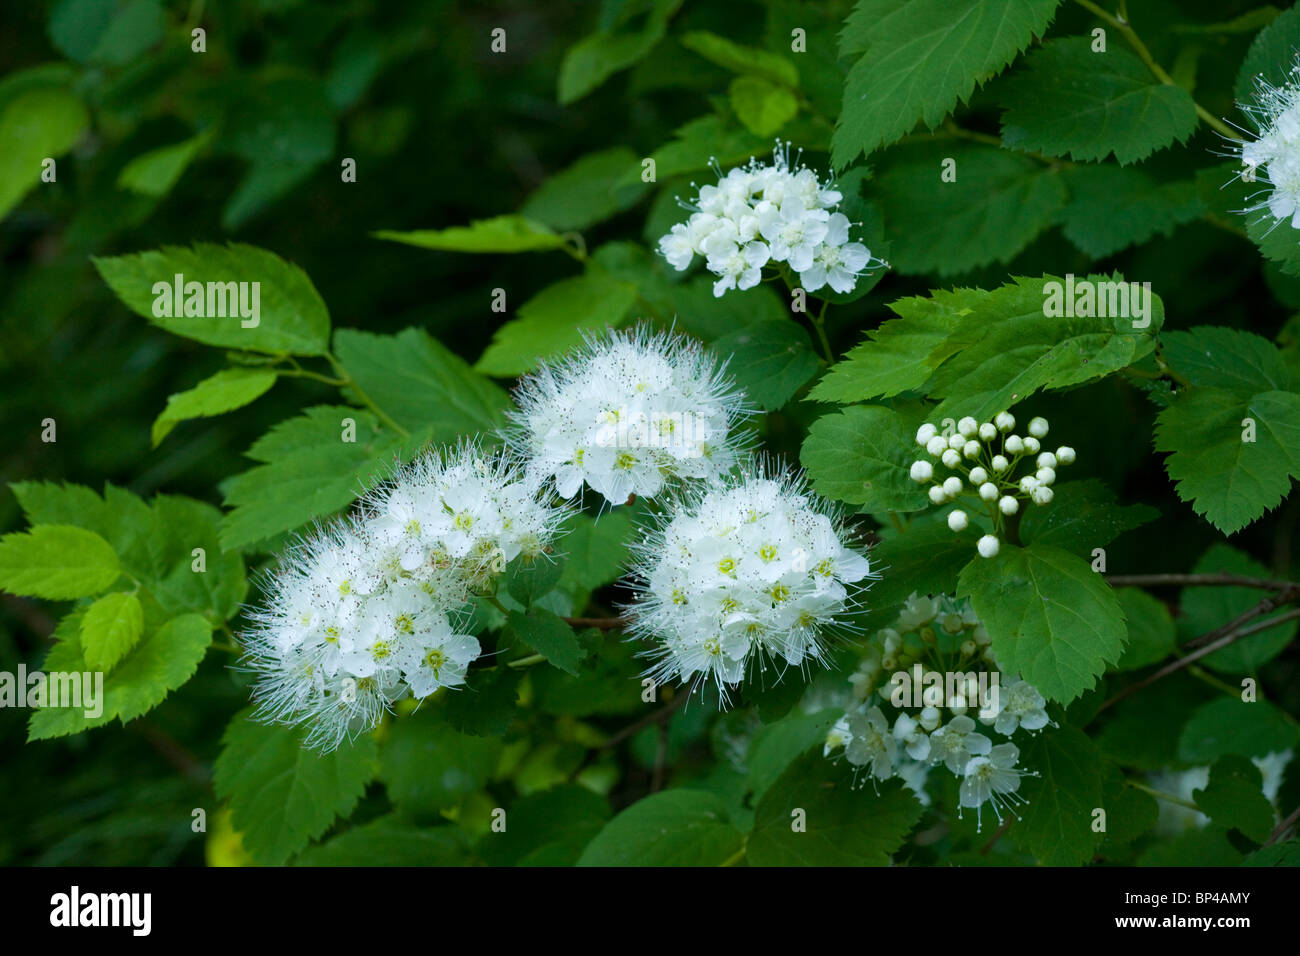 Elm-leaved Spiraea, Spiraea chamaedryfolia ssp. ulmifolia = Spiraea ulmifolia in flower, Romania. Stock Photo